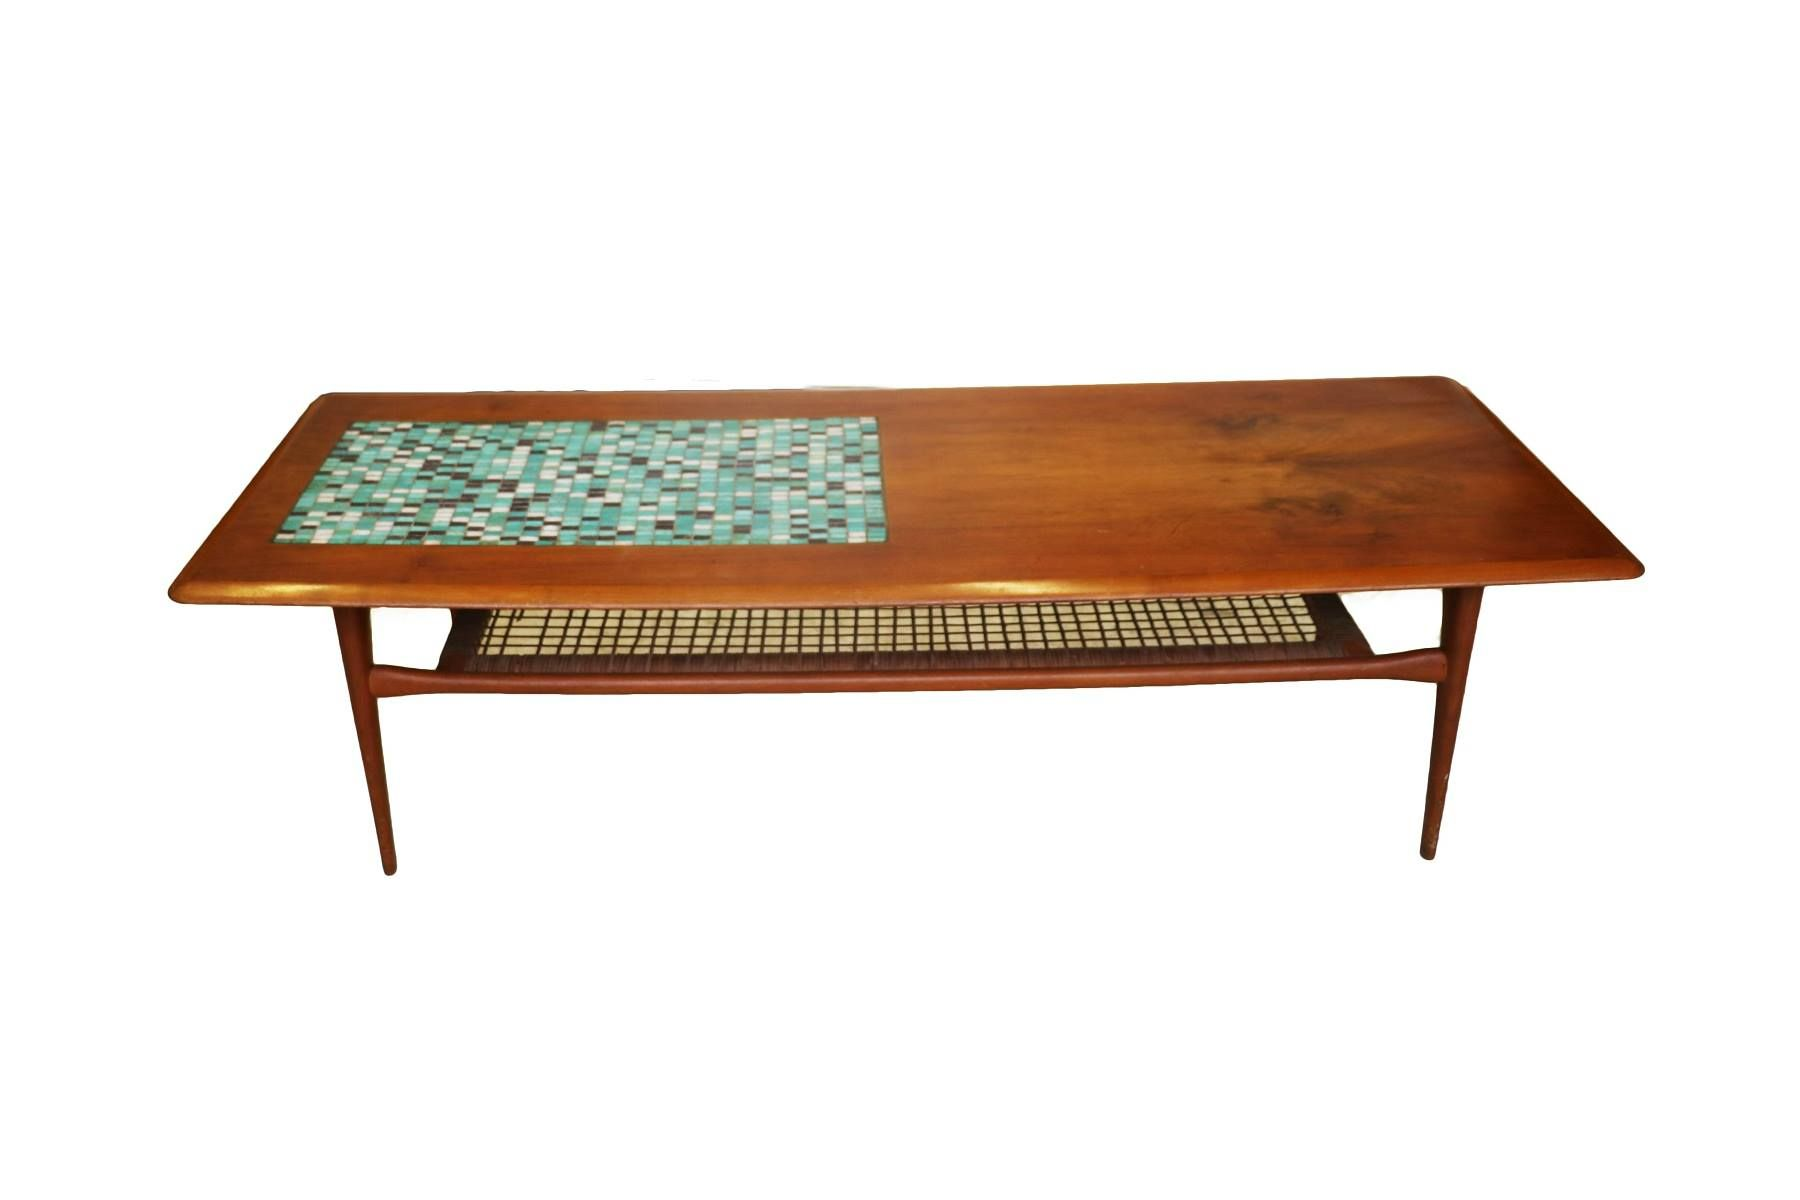 Mid Century Danish Coffee Table Two Tier Description This Beautiful Modern Features A Rectangular Top With An Inset Mosaic Panel